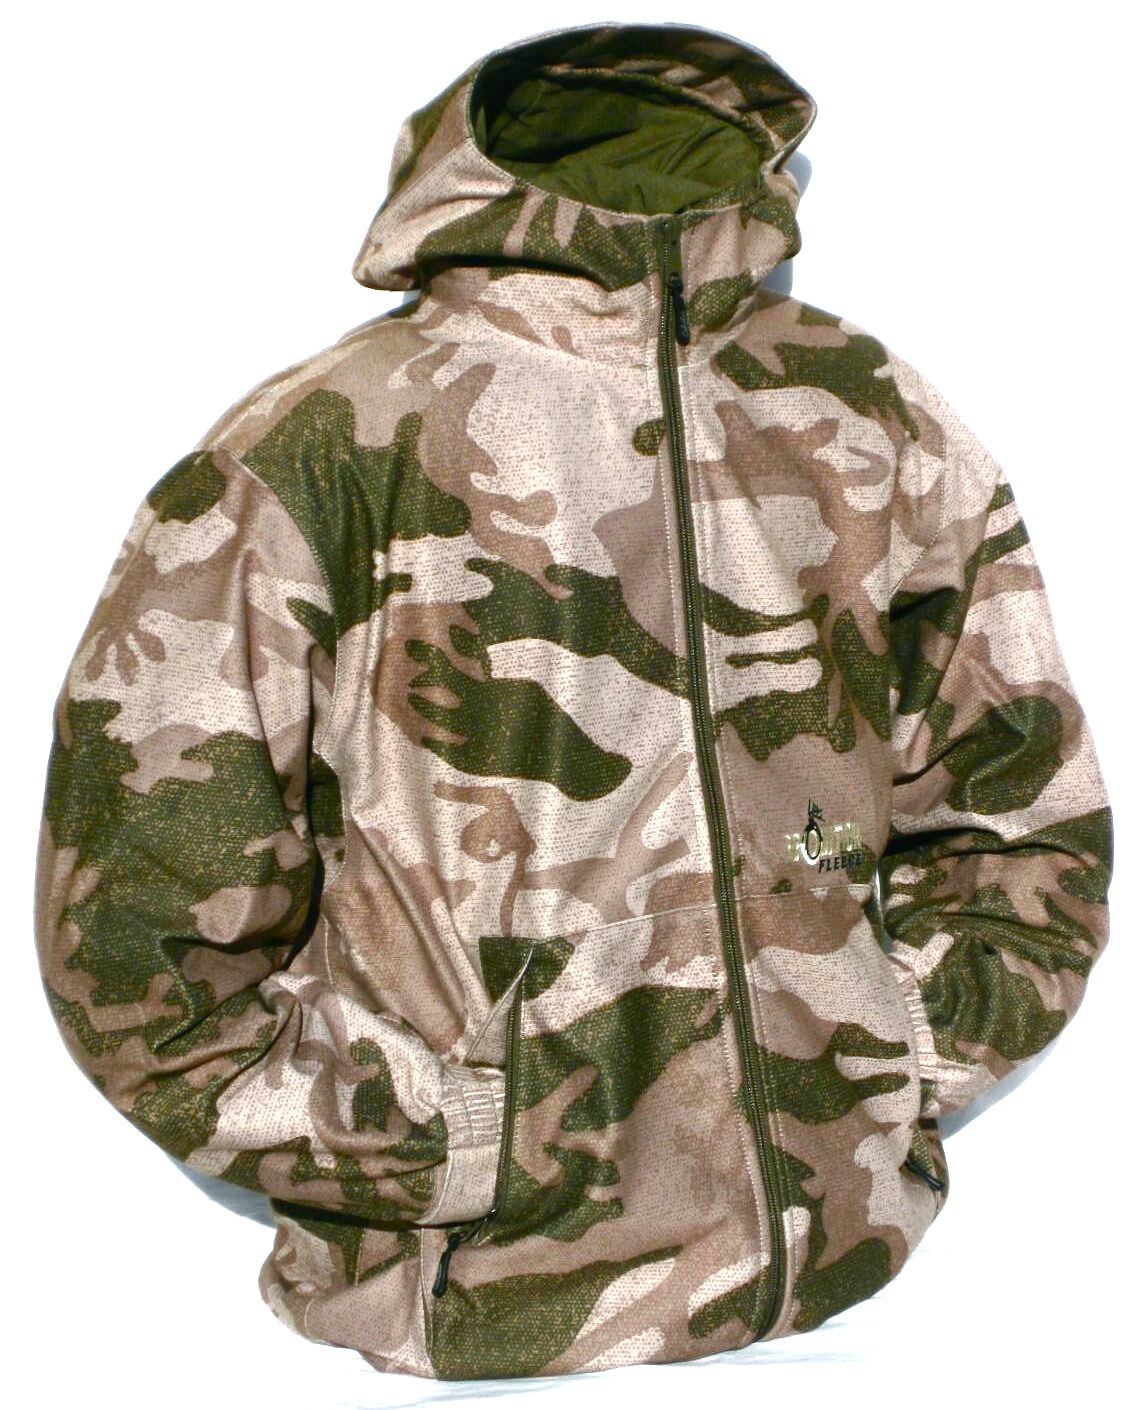 Cabela's Revolution Fleece Dry-plus Wind & Waterproof Outfitter Hunting Jacket